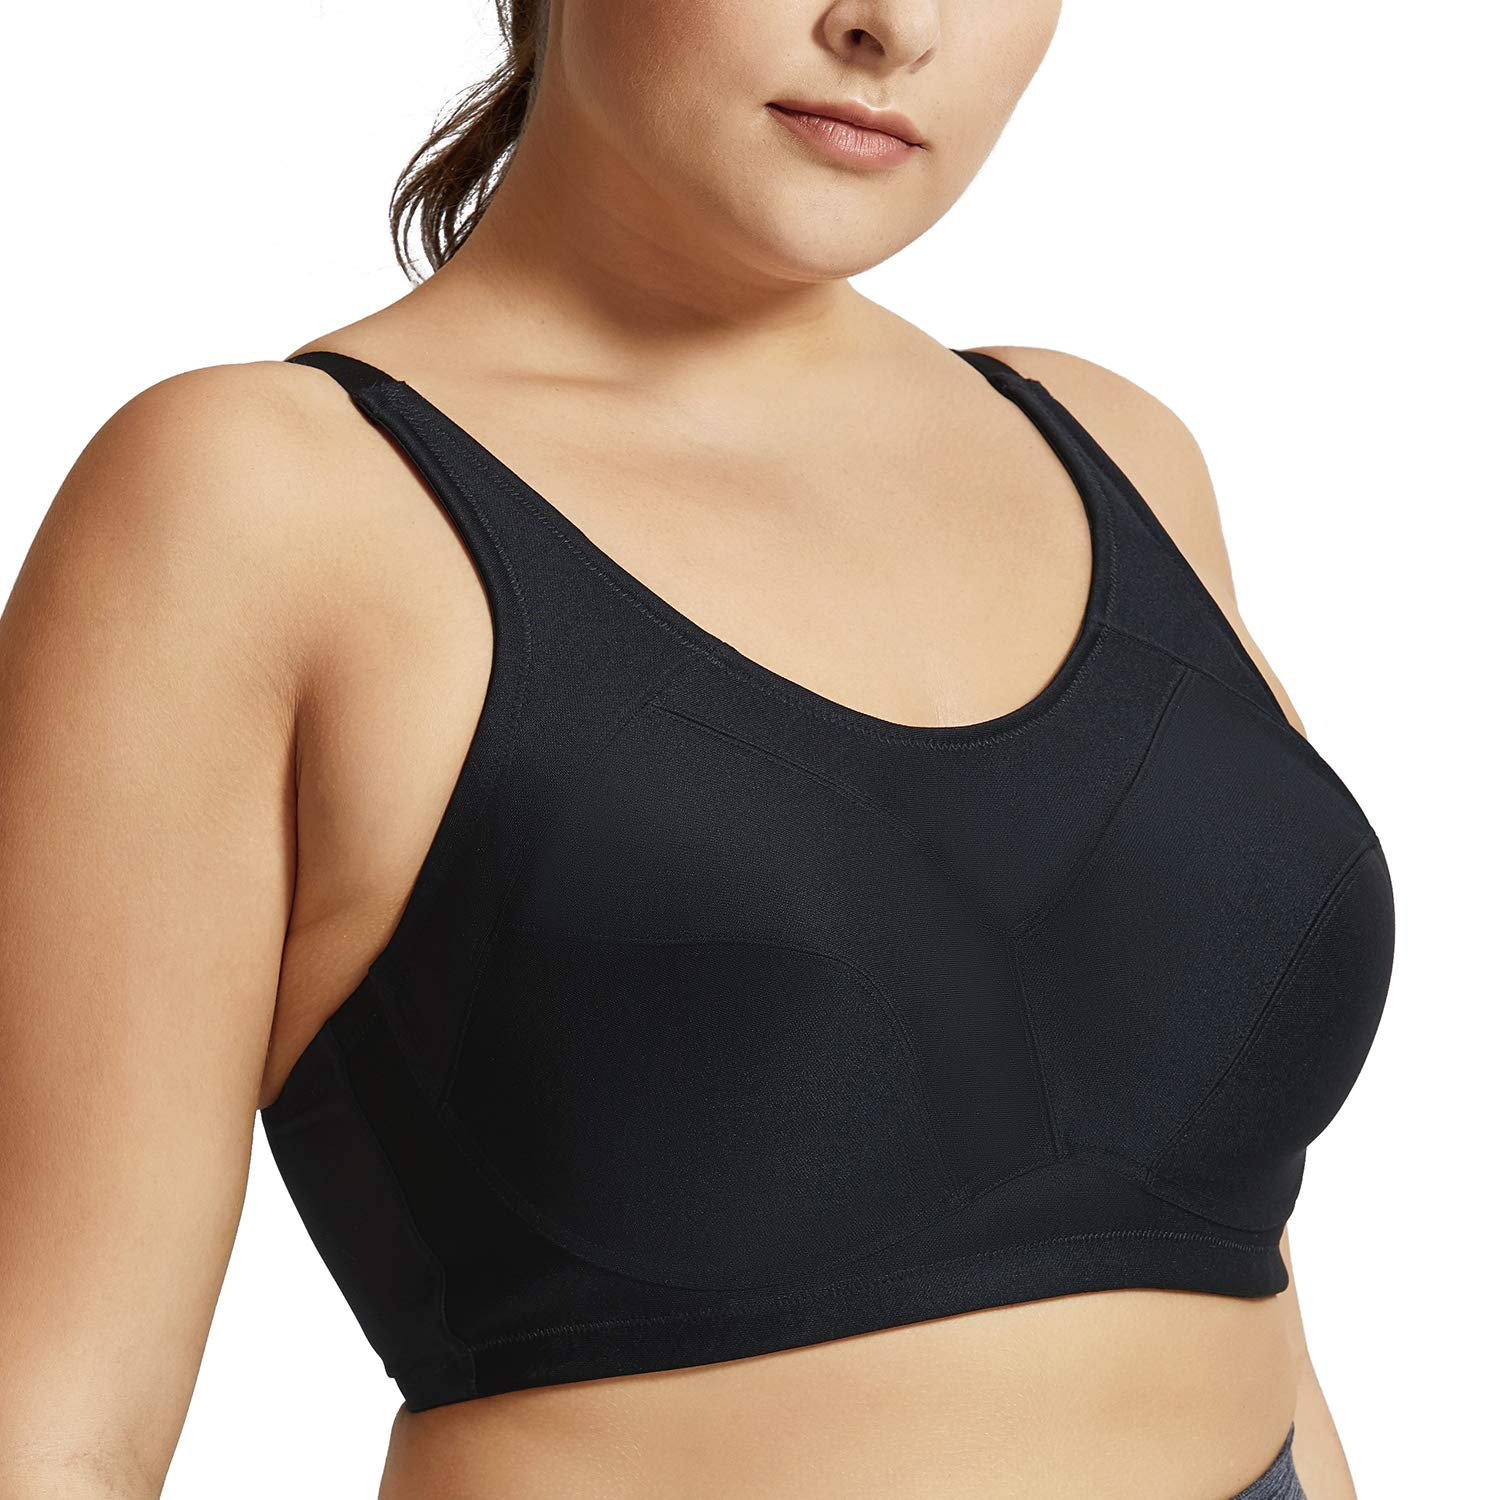 SYROKAN Women's High Impact Support Plus Size Coolmax Underwire Workout Sports Bra